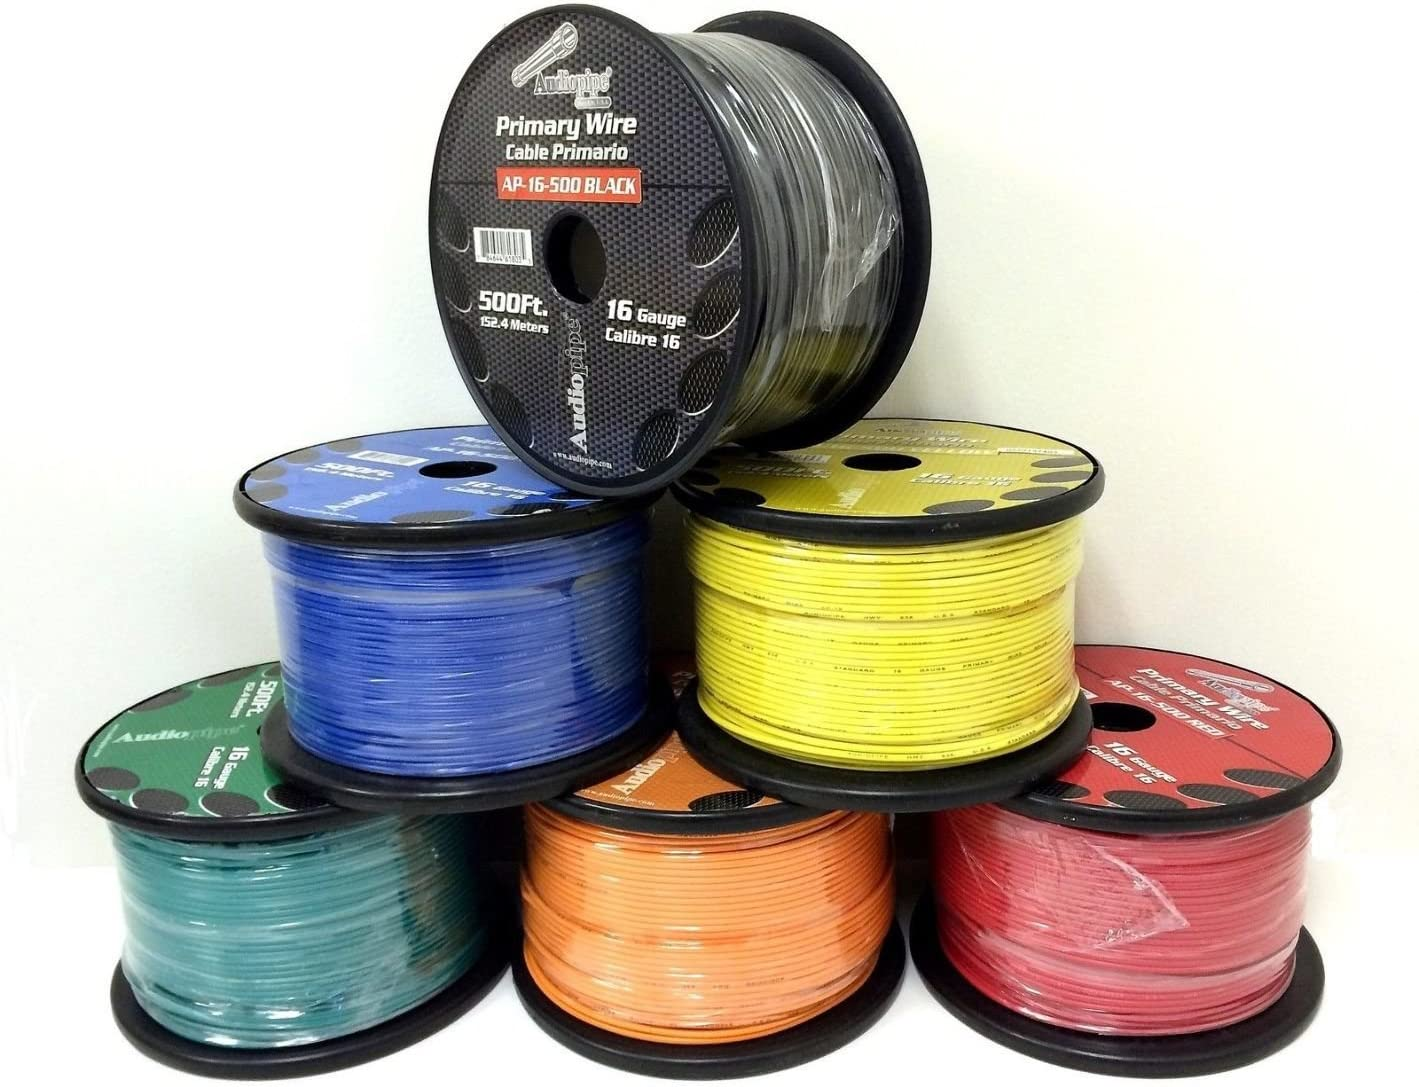 3 Rolls of 16 Gauge - 500' each Audiopipe Car Audio Home Primary Remote Wire 71ixGTVbrKLSL1419_